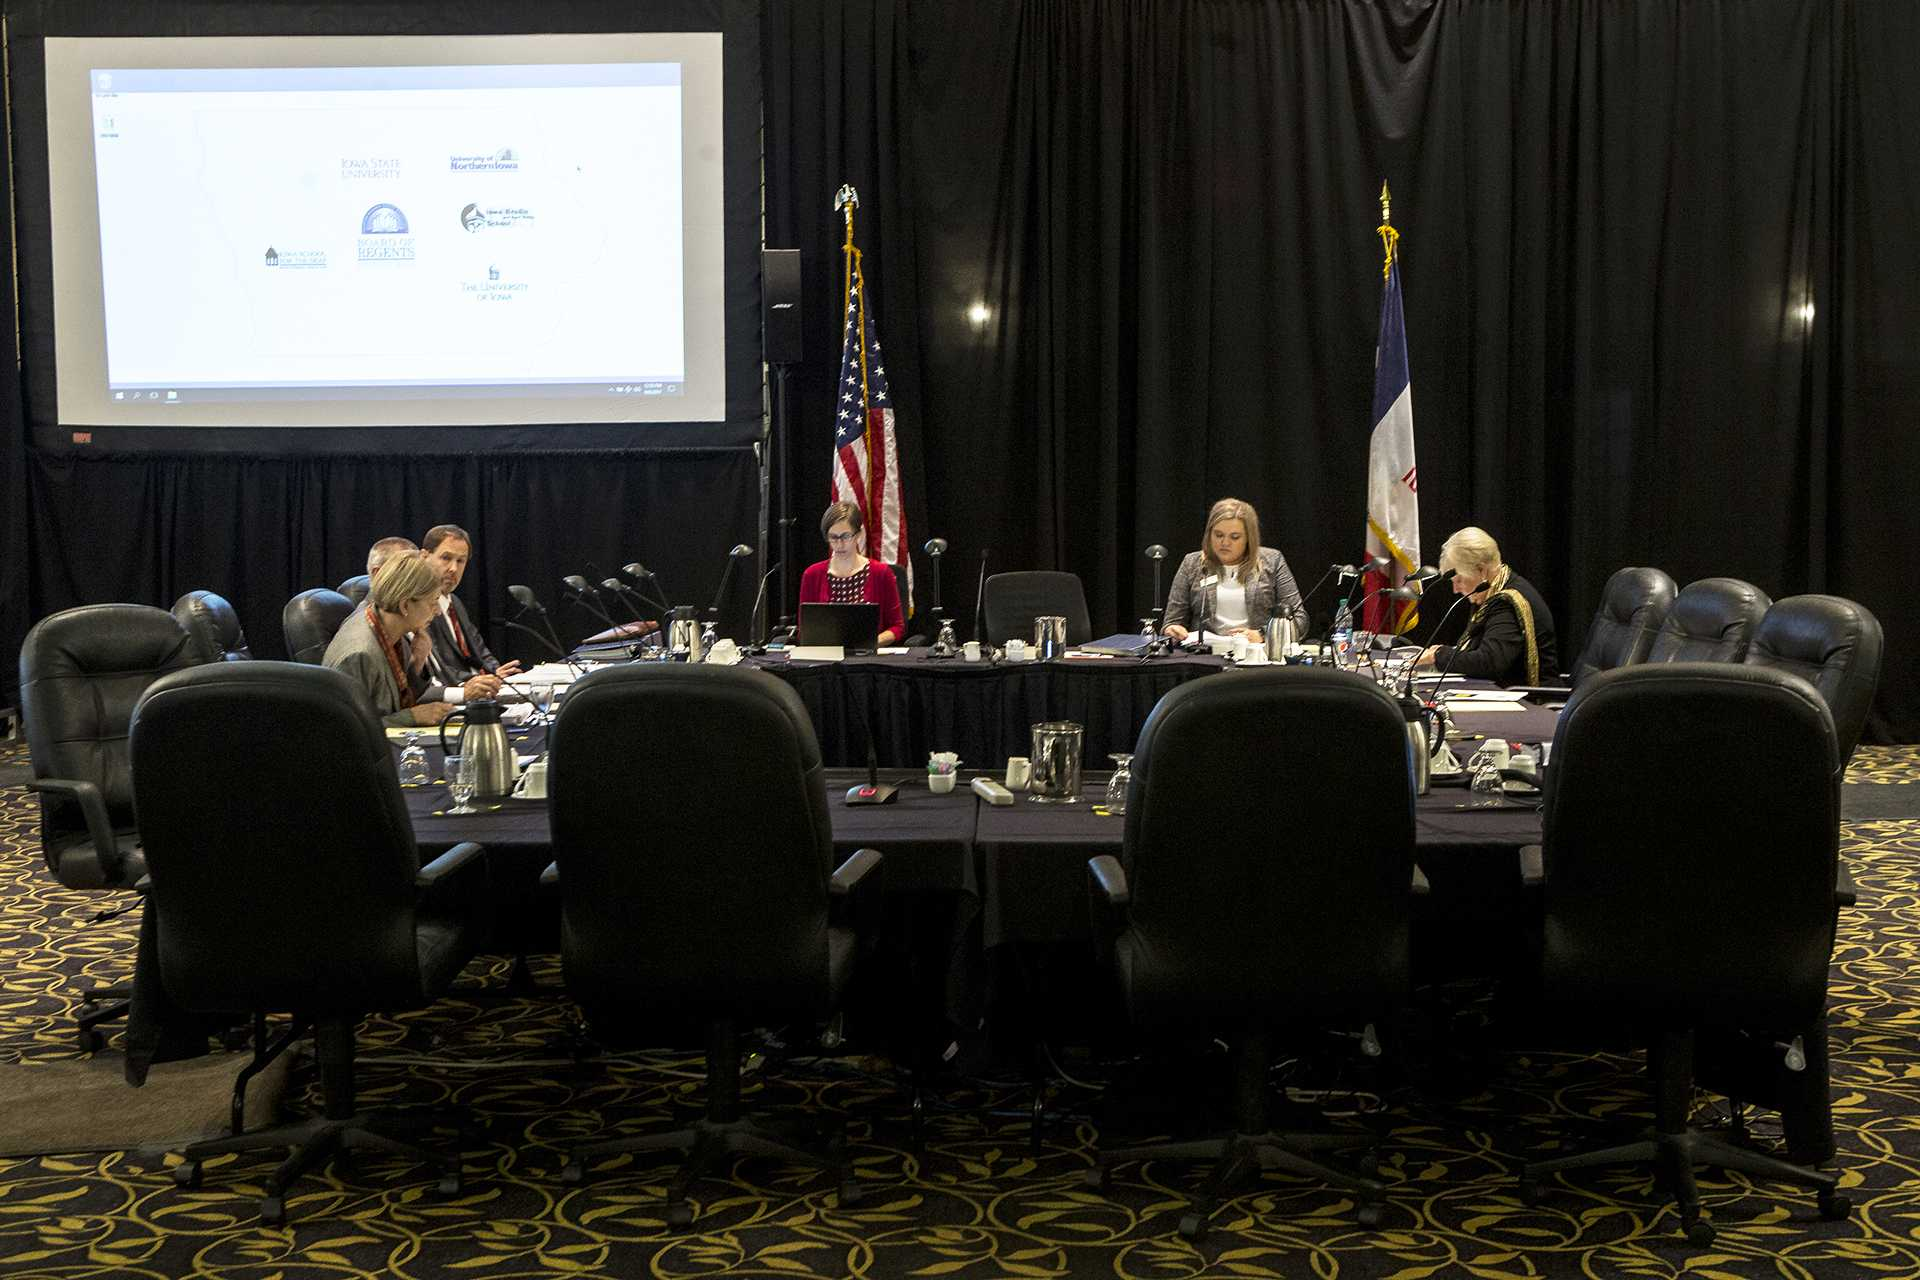 The Board of Regents meeting commences inside the IMU Main Lounge on Wednesday, Sept. 6, 2017. In attendance was Sarah Fisher Gardial, Dean of the Tippie College of Business, who addressed the removal of a full-time MBA program through the business school. (Ben Smith/The Daily Iowan)